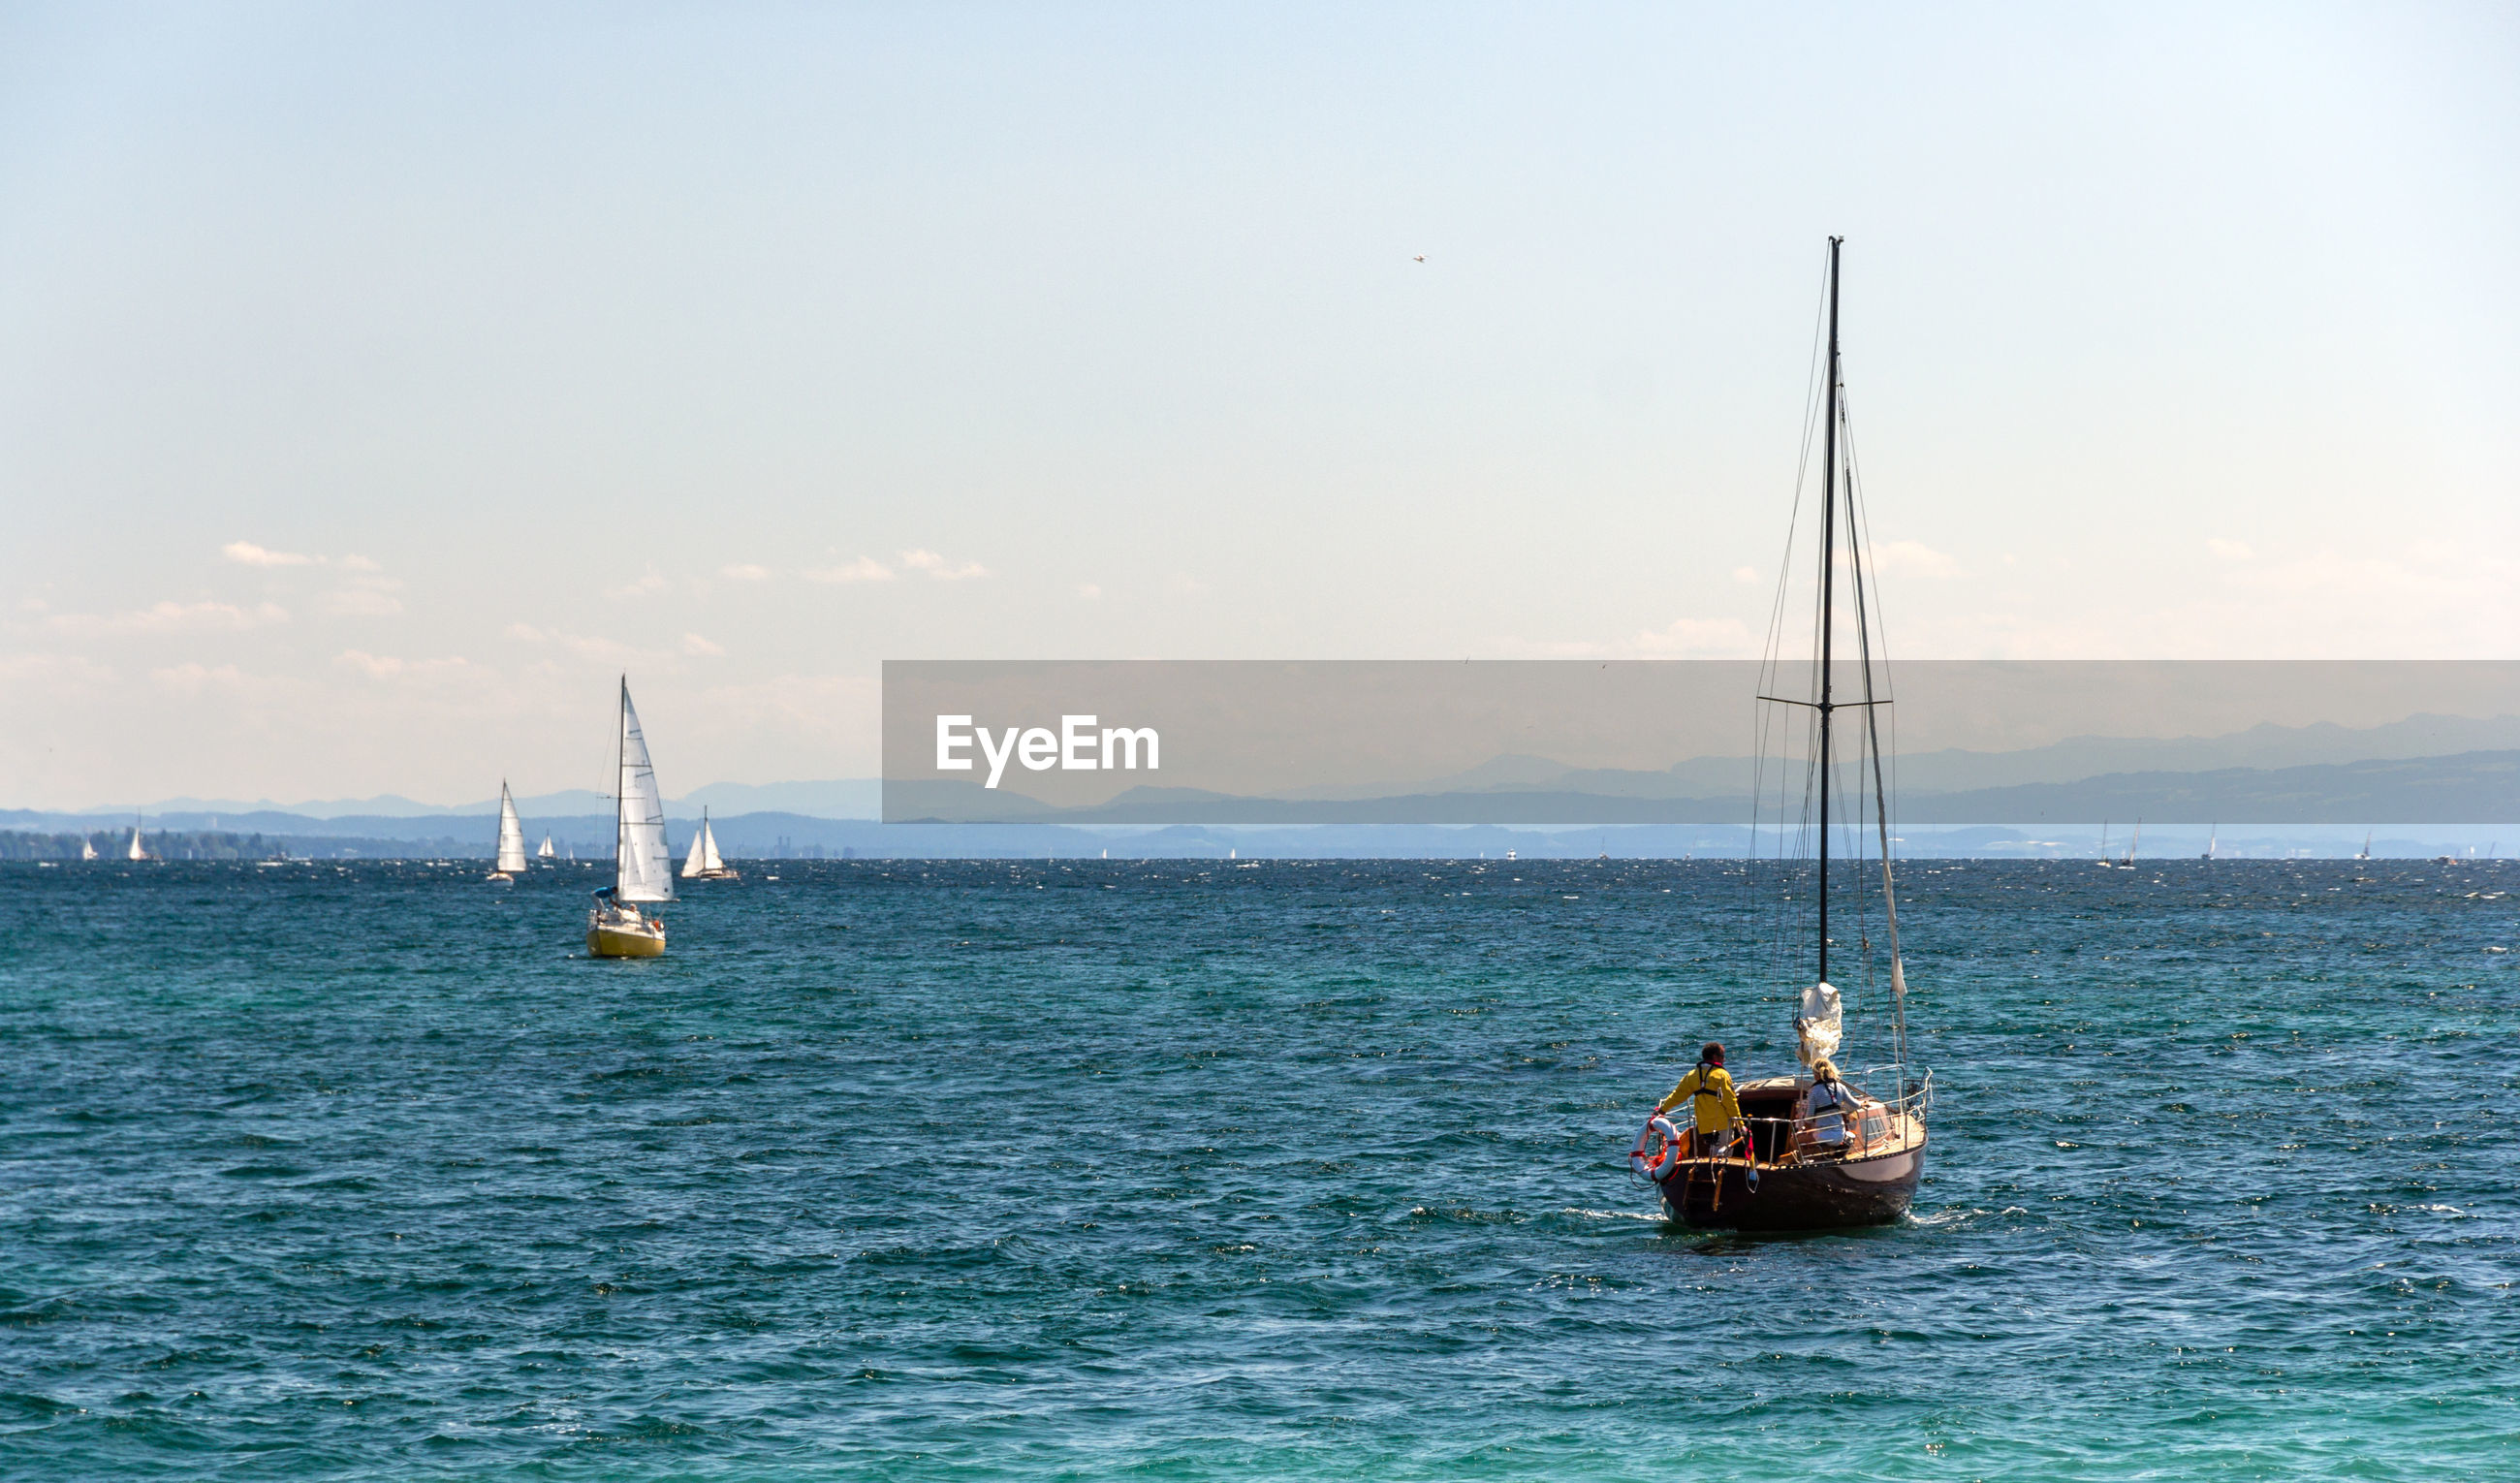 VIEW OF SAILBOAT SAILING ON SEA AGAINST SKY